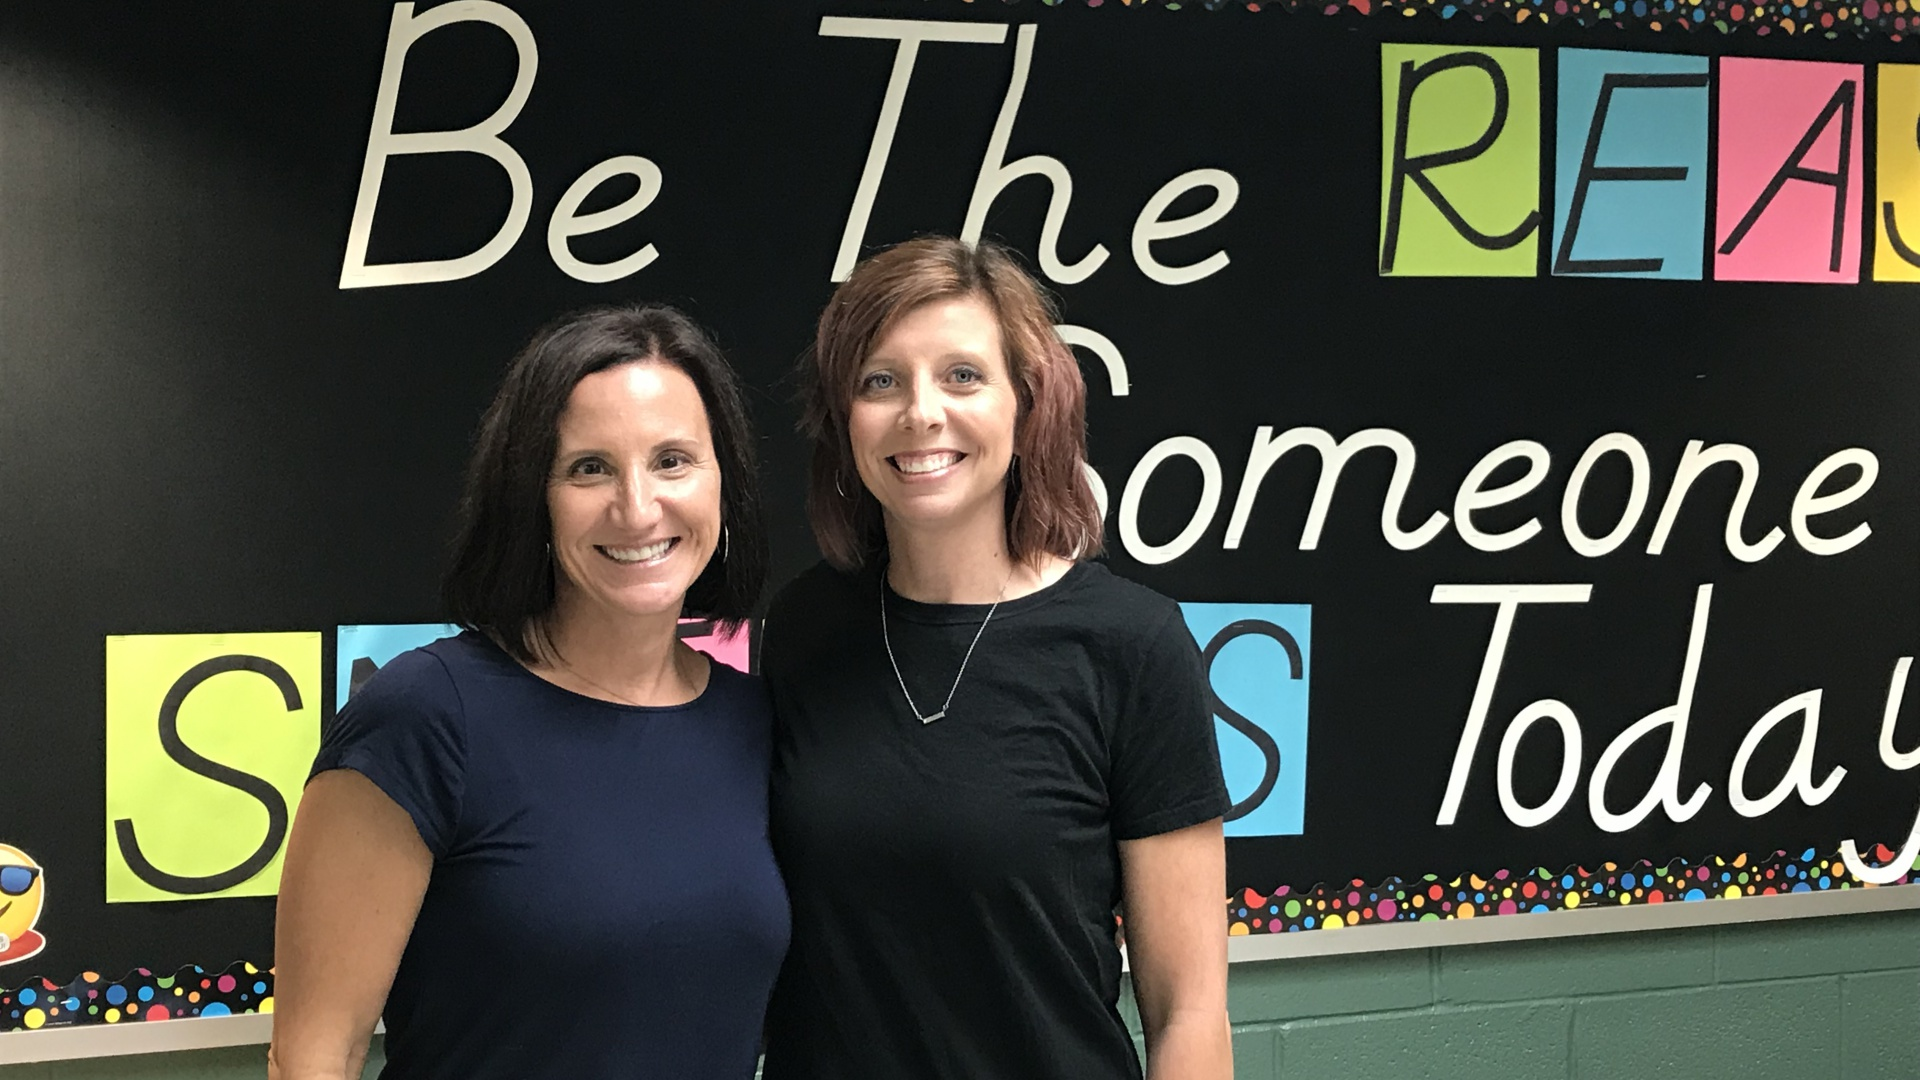 slidshow image - Mrs. Wrobel and Mrs. Edmondson, CE Social Workers -